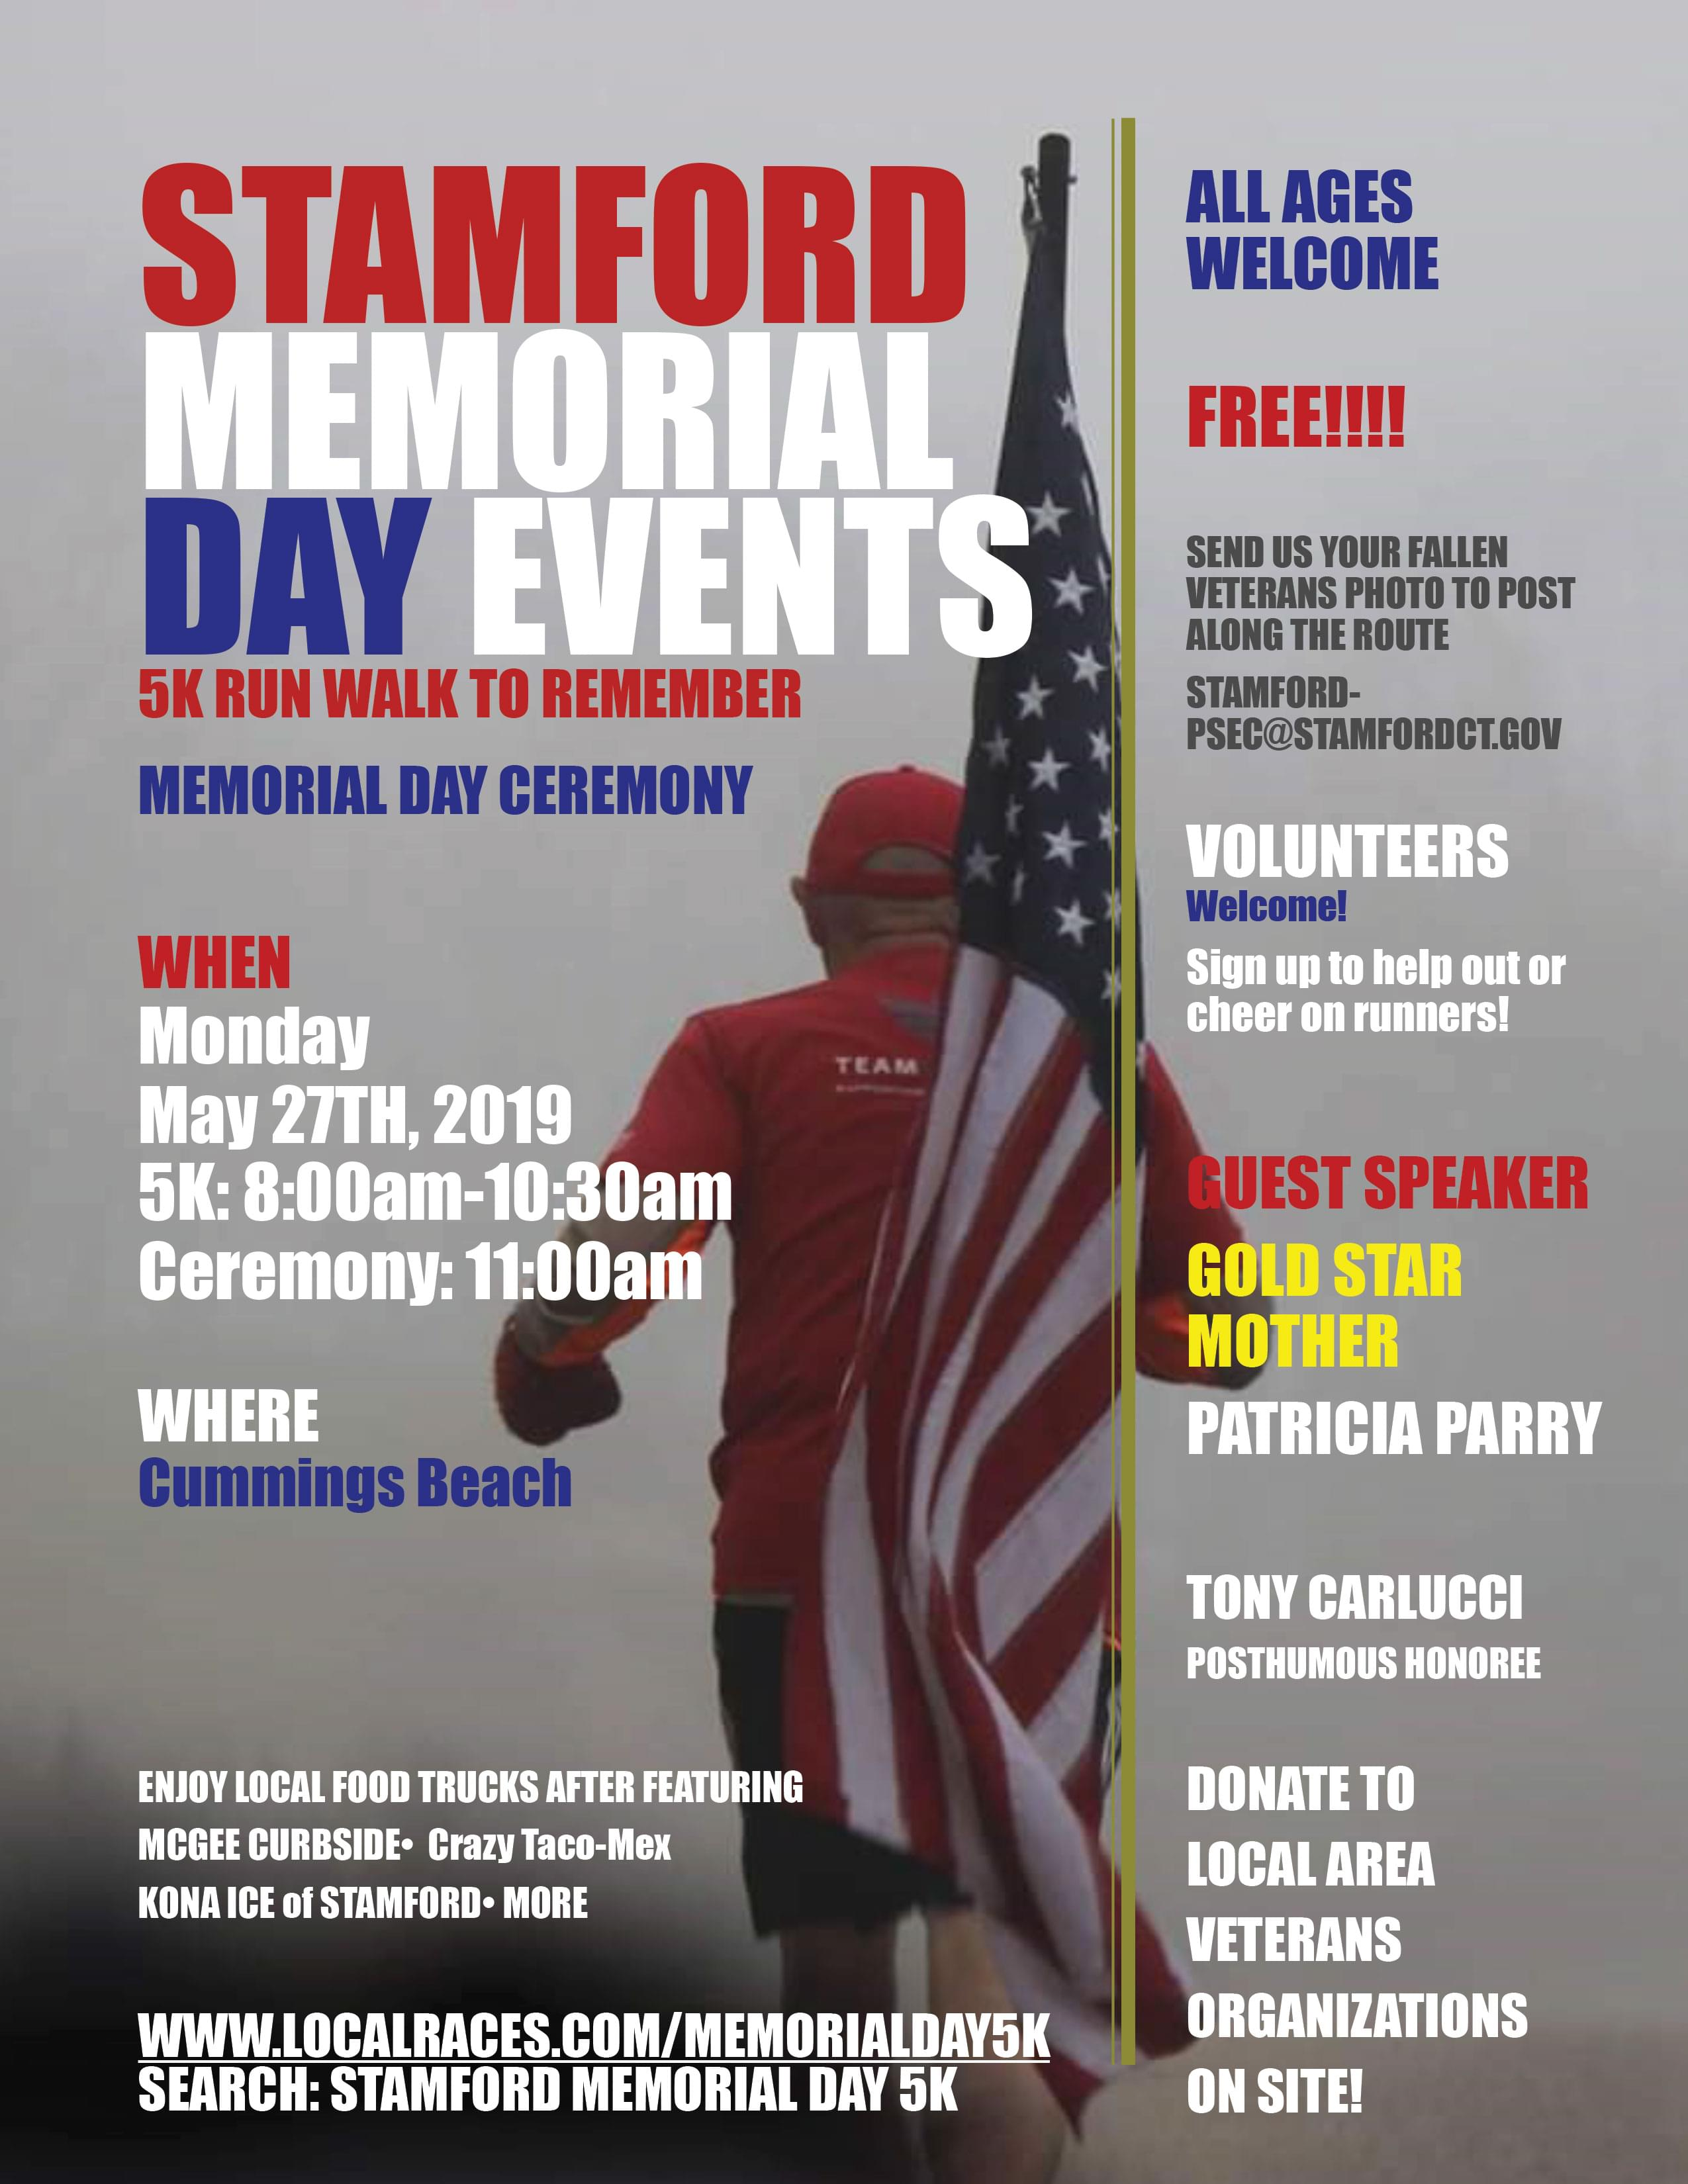 Stamford Memorial Day Events